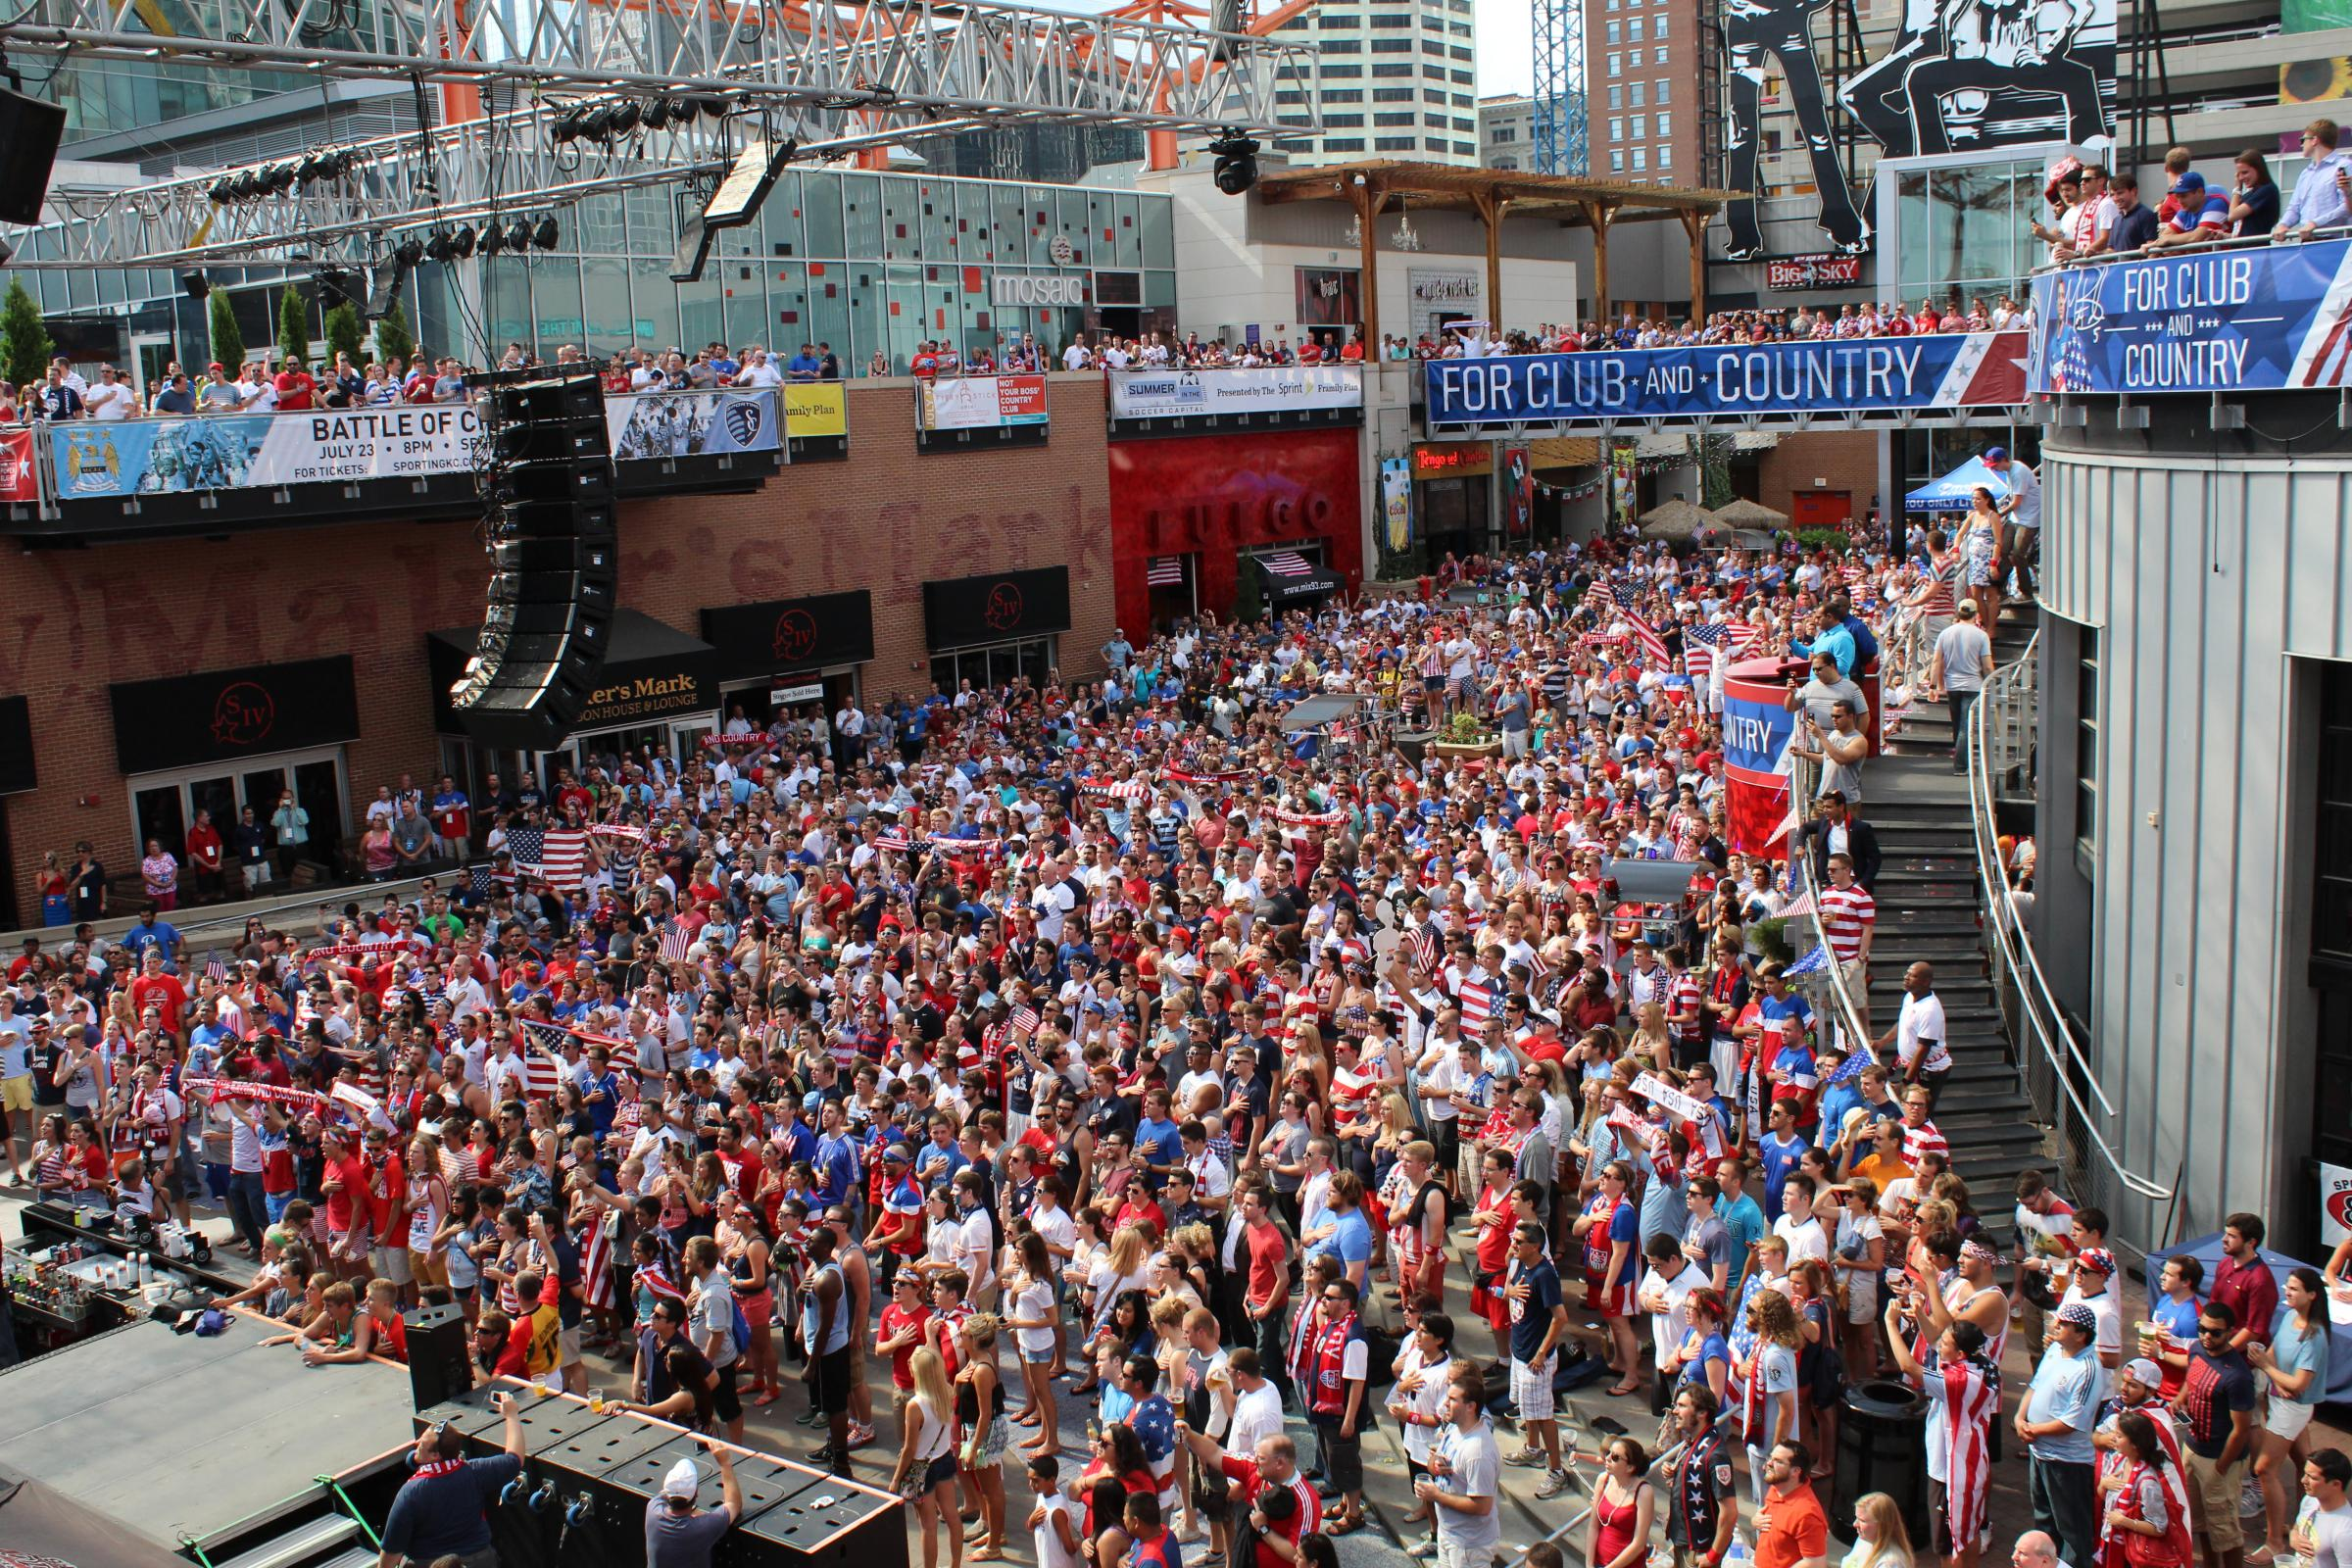 Swarms Of Soccer Fans Packed The Power And Light District To Watch The  United States Beat Ghana 2 1 In Last Nightu0027s World Cup Match.